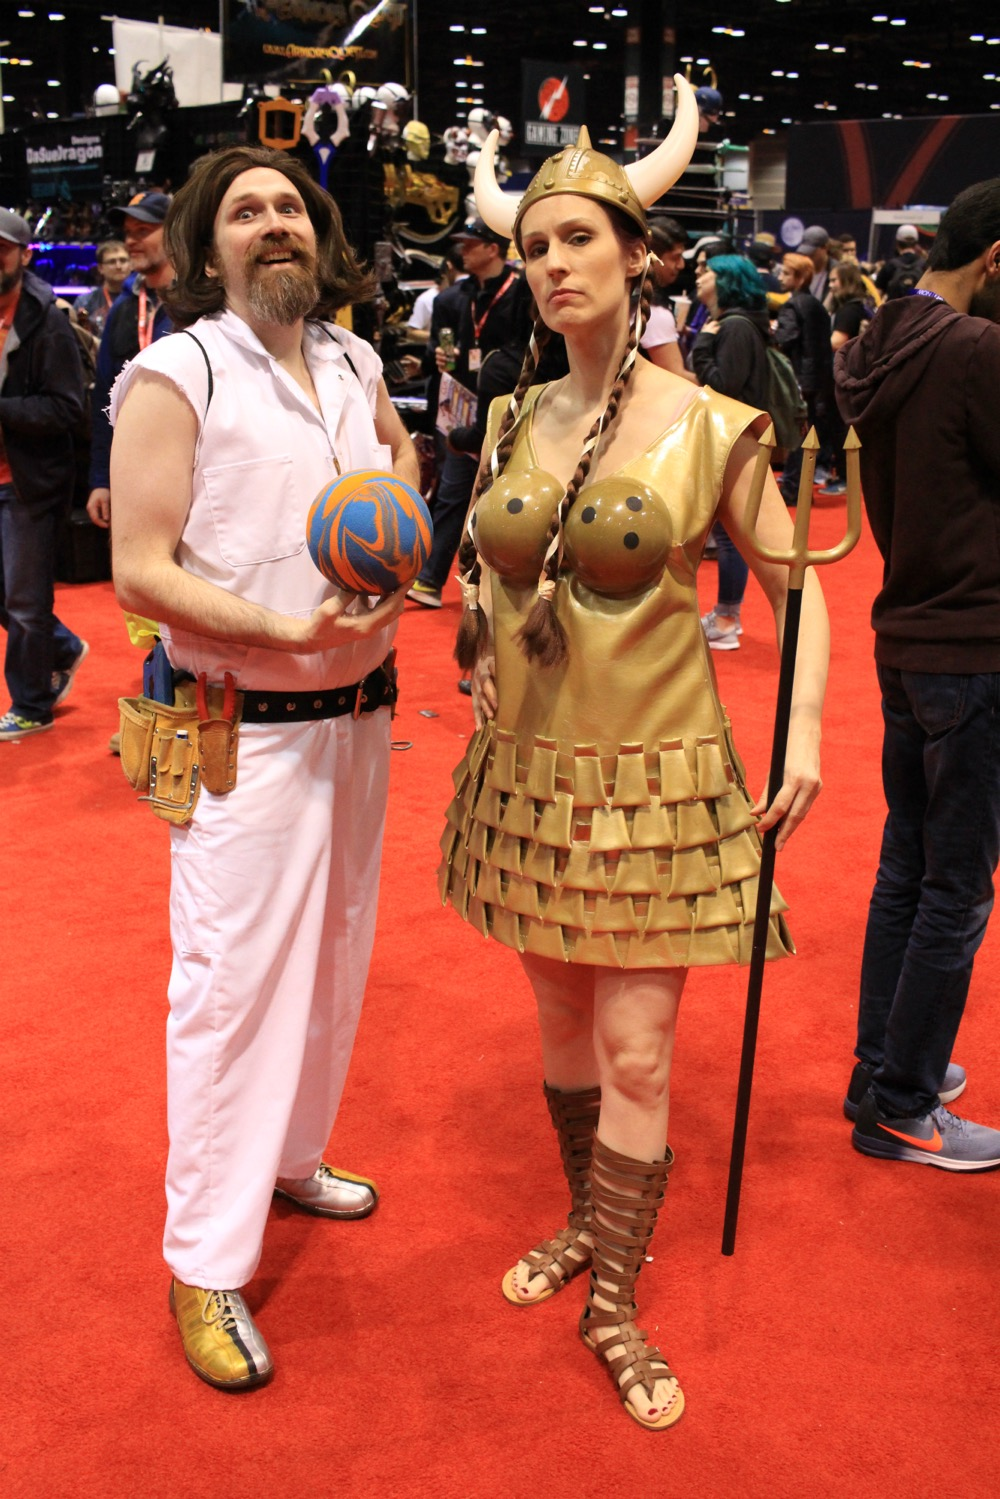 C2E2, Cosplay, Comic Books, Chicago, Convention, Con, Superheroes, The Big Lebowski